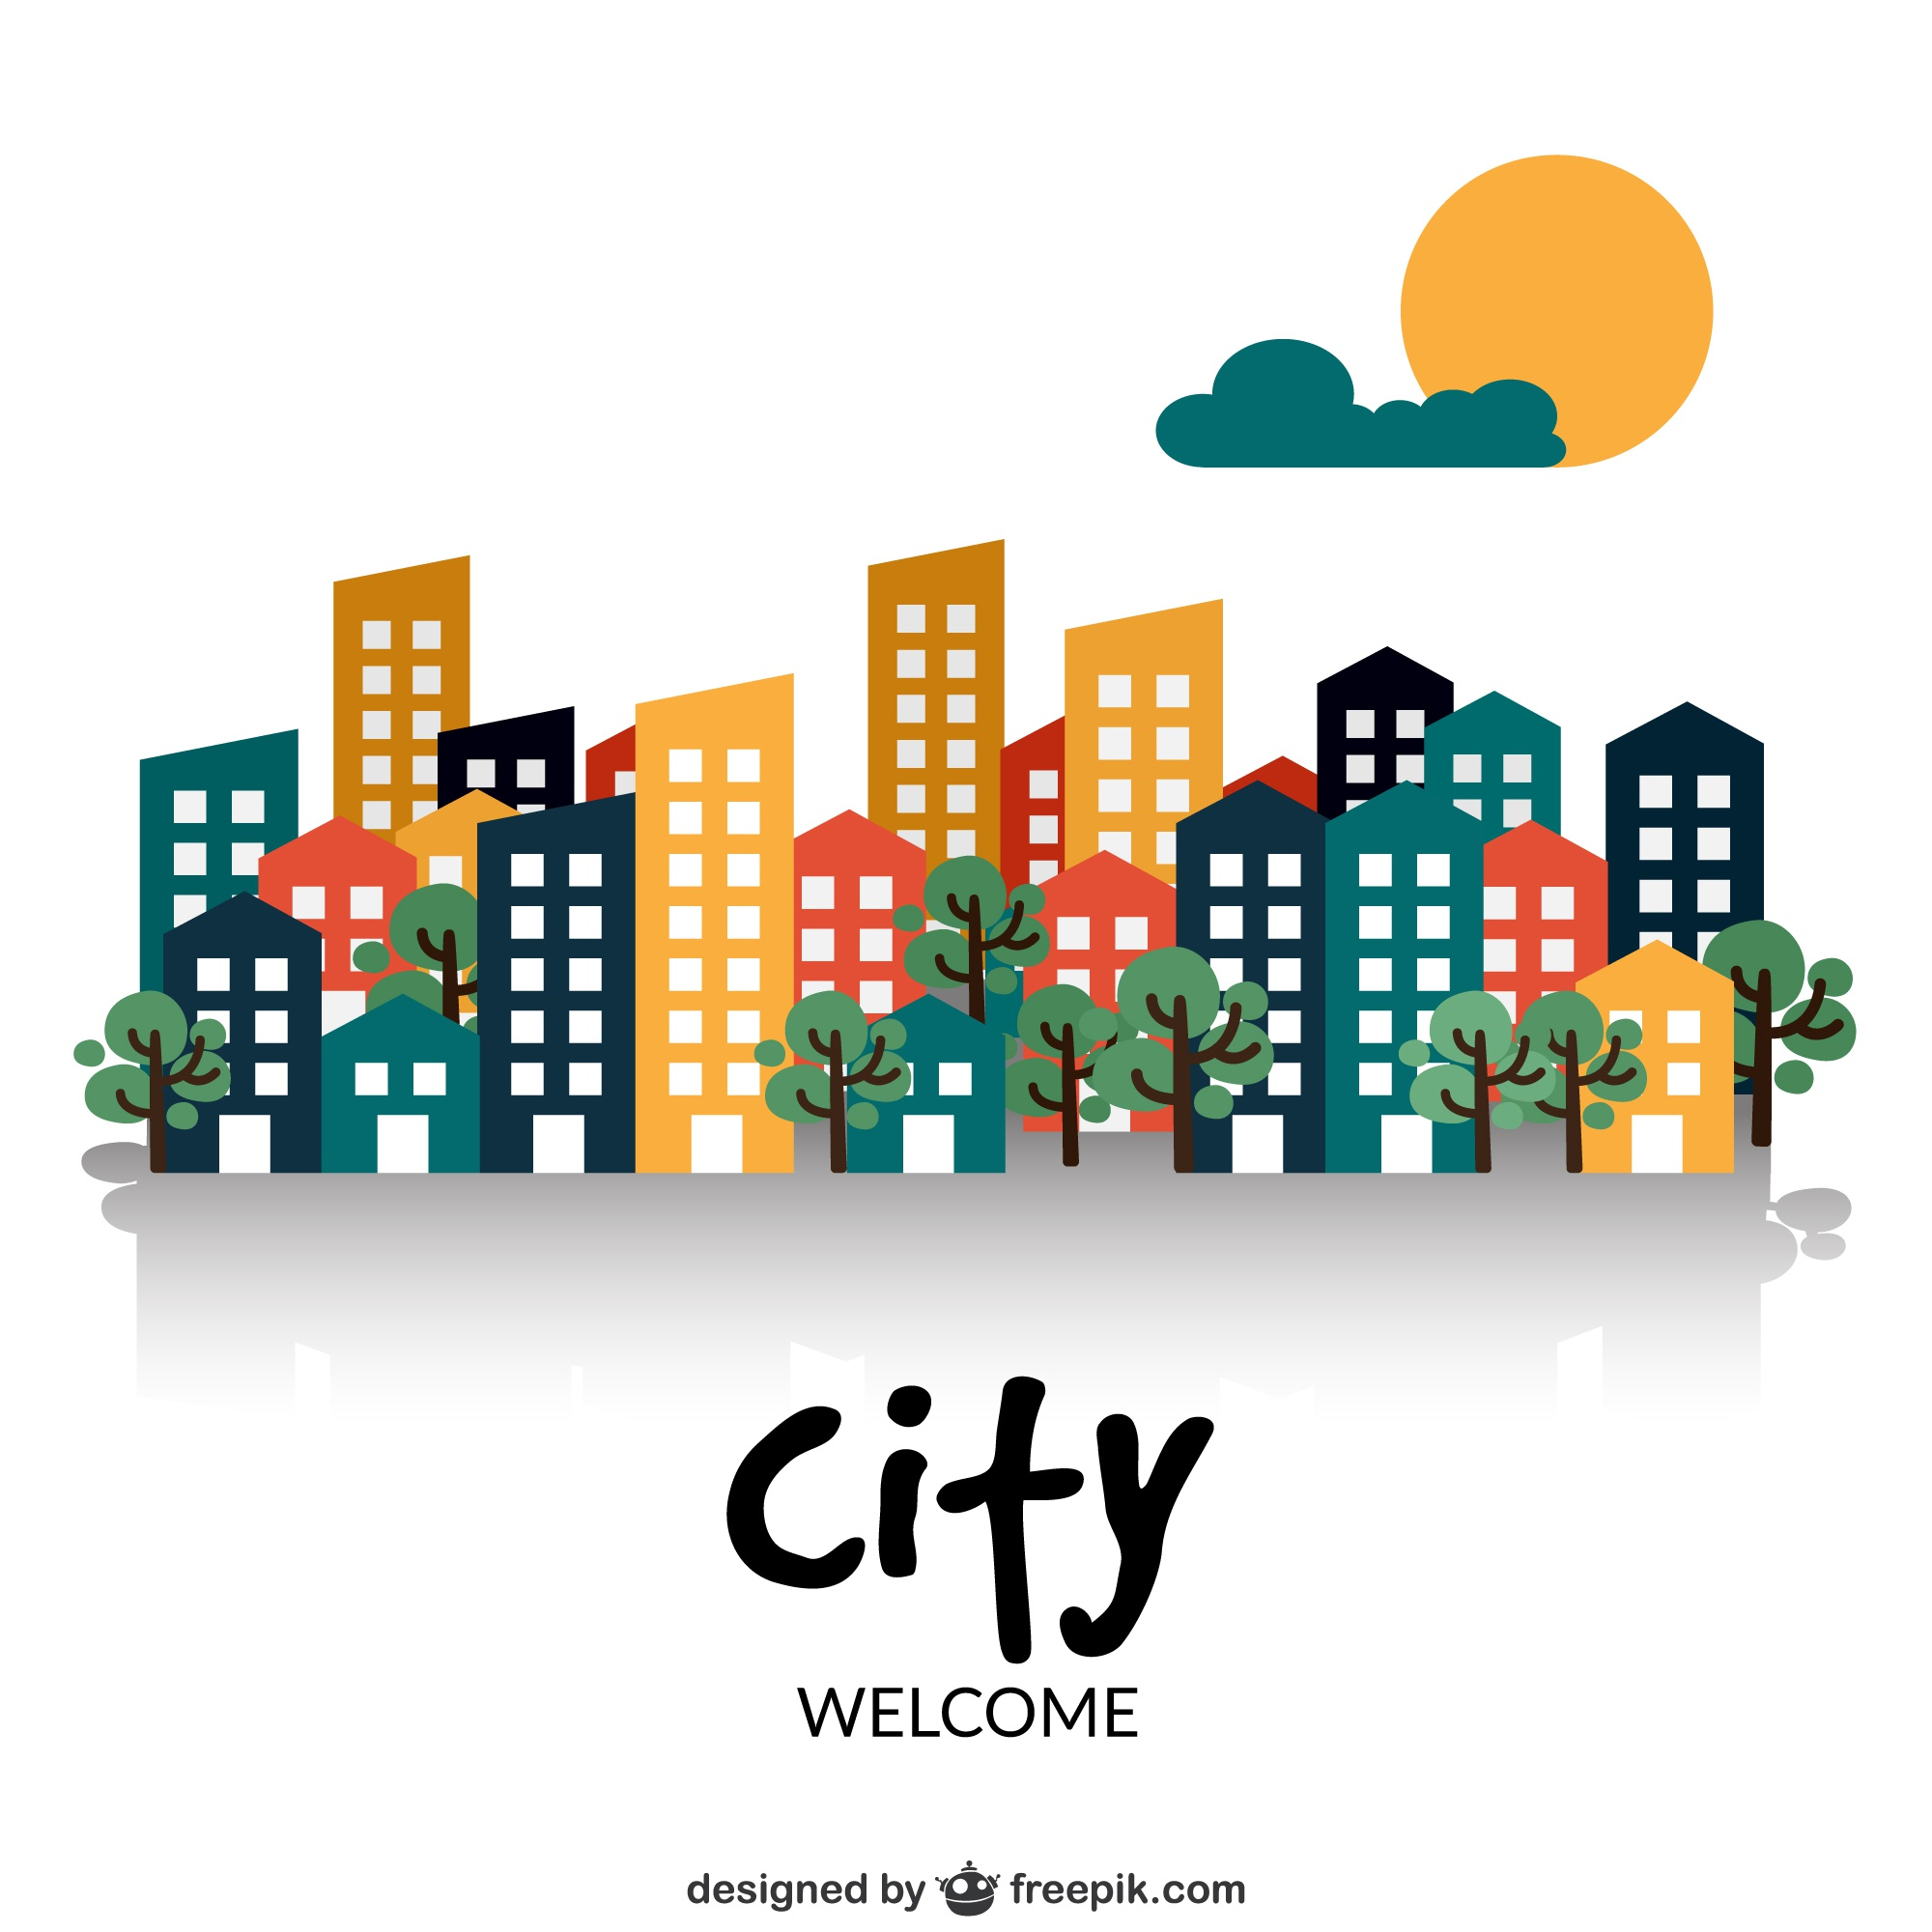 Welcome to the city